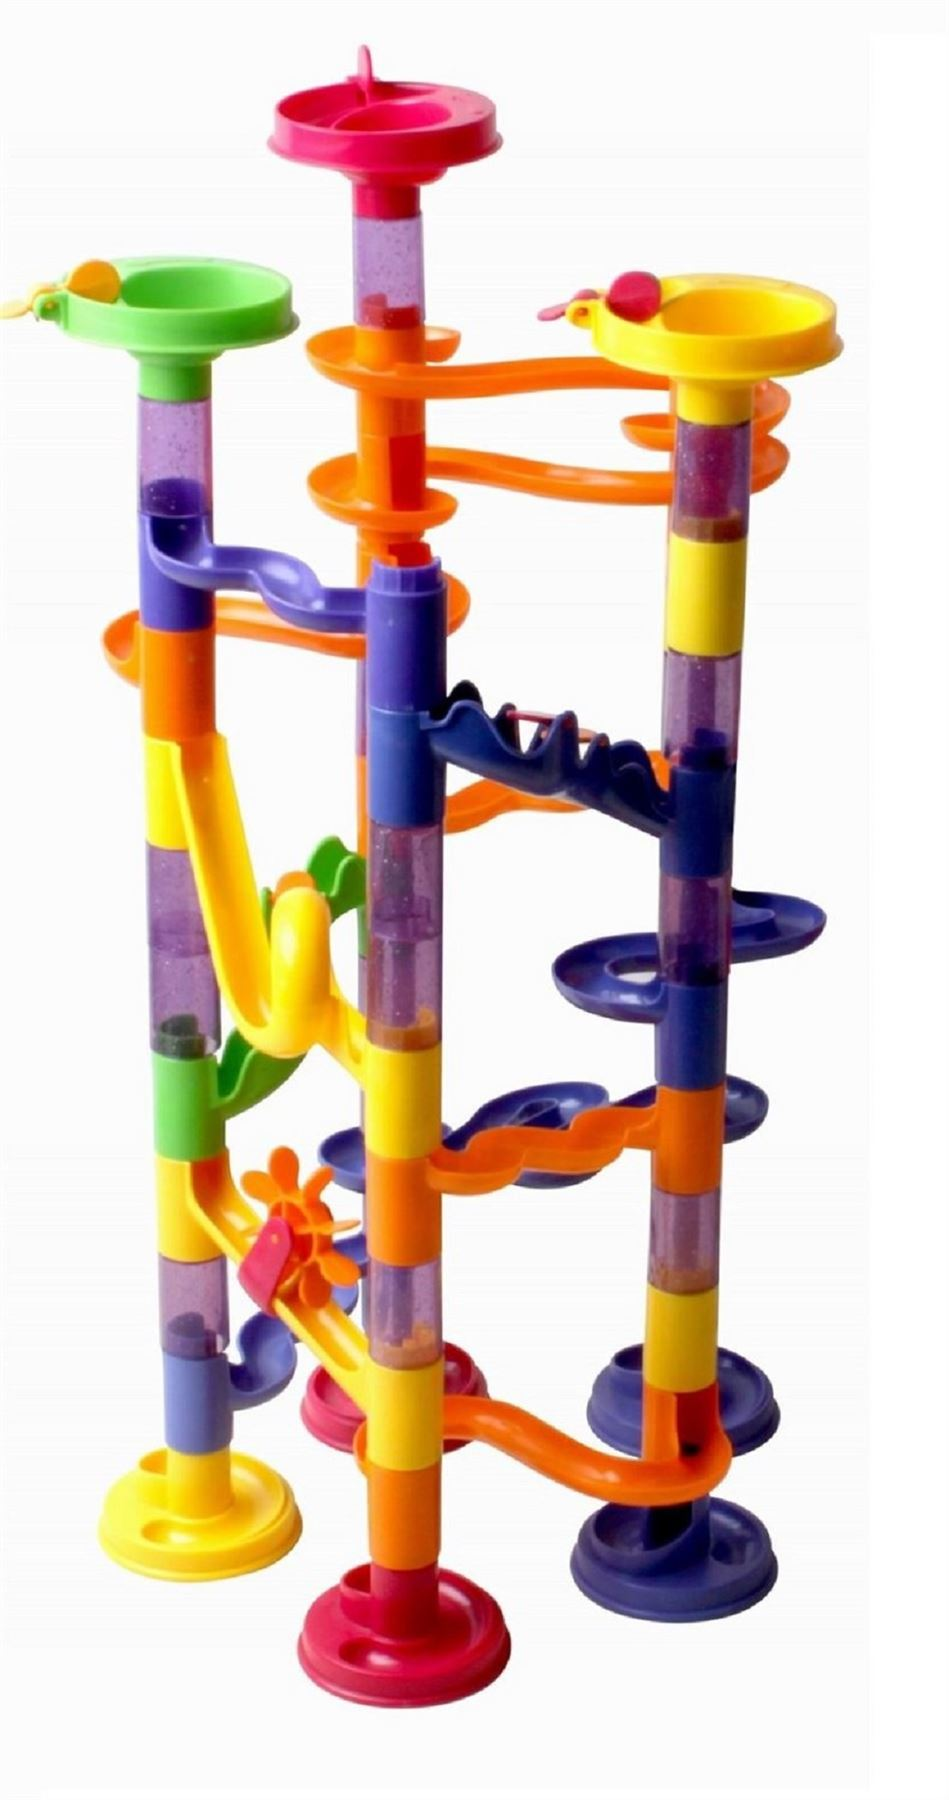 Marble Run Race Construction Childrens Kids Building